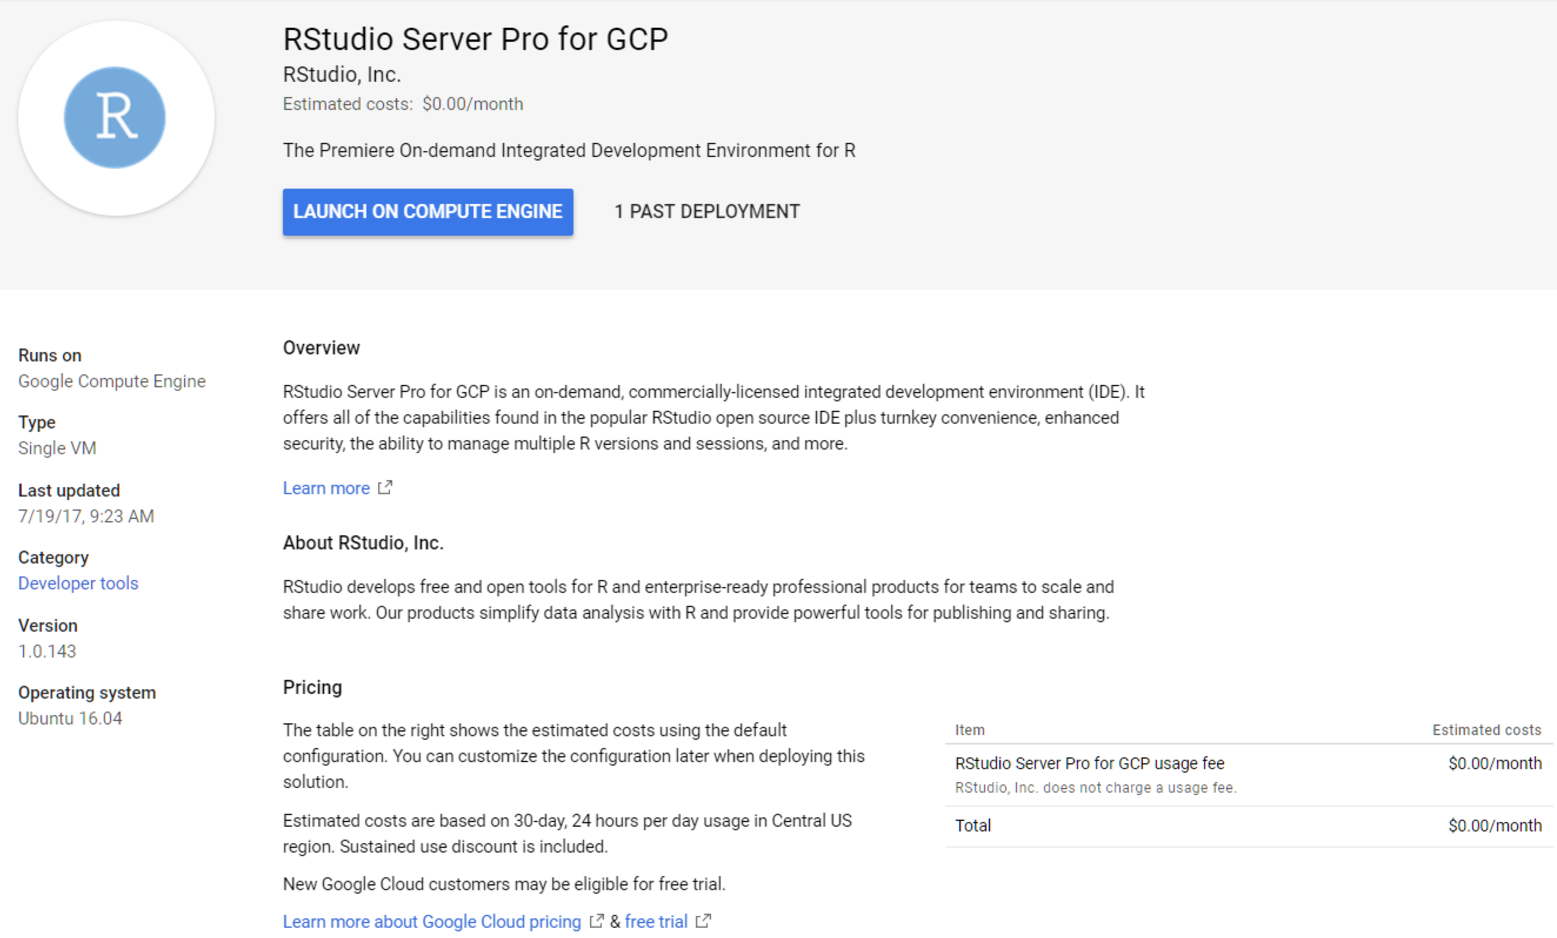 RStudio Server Pro is ready for BigQuery on the Google Cloud Platform